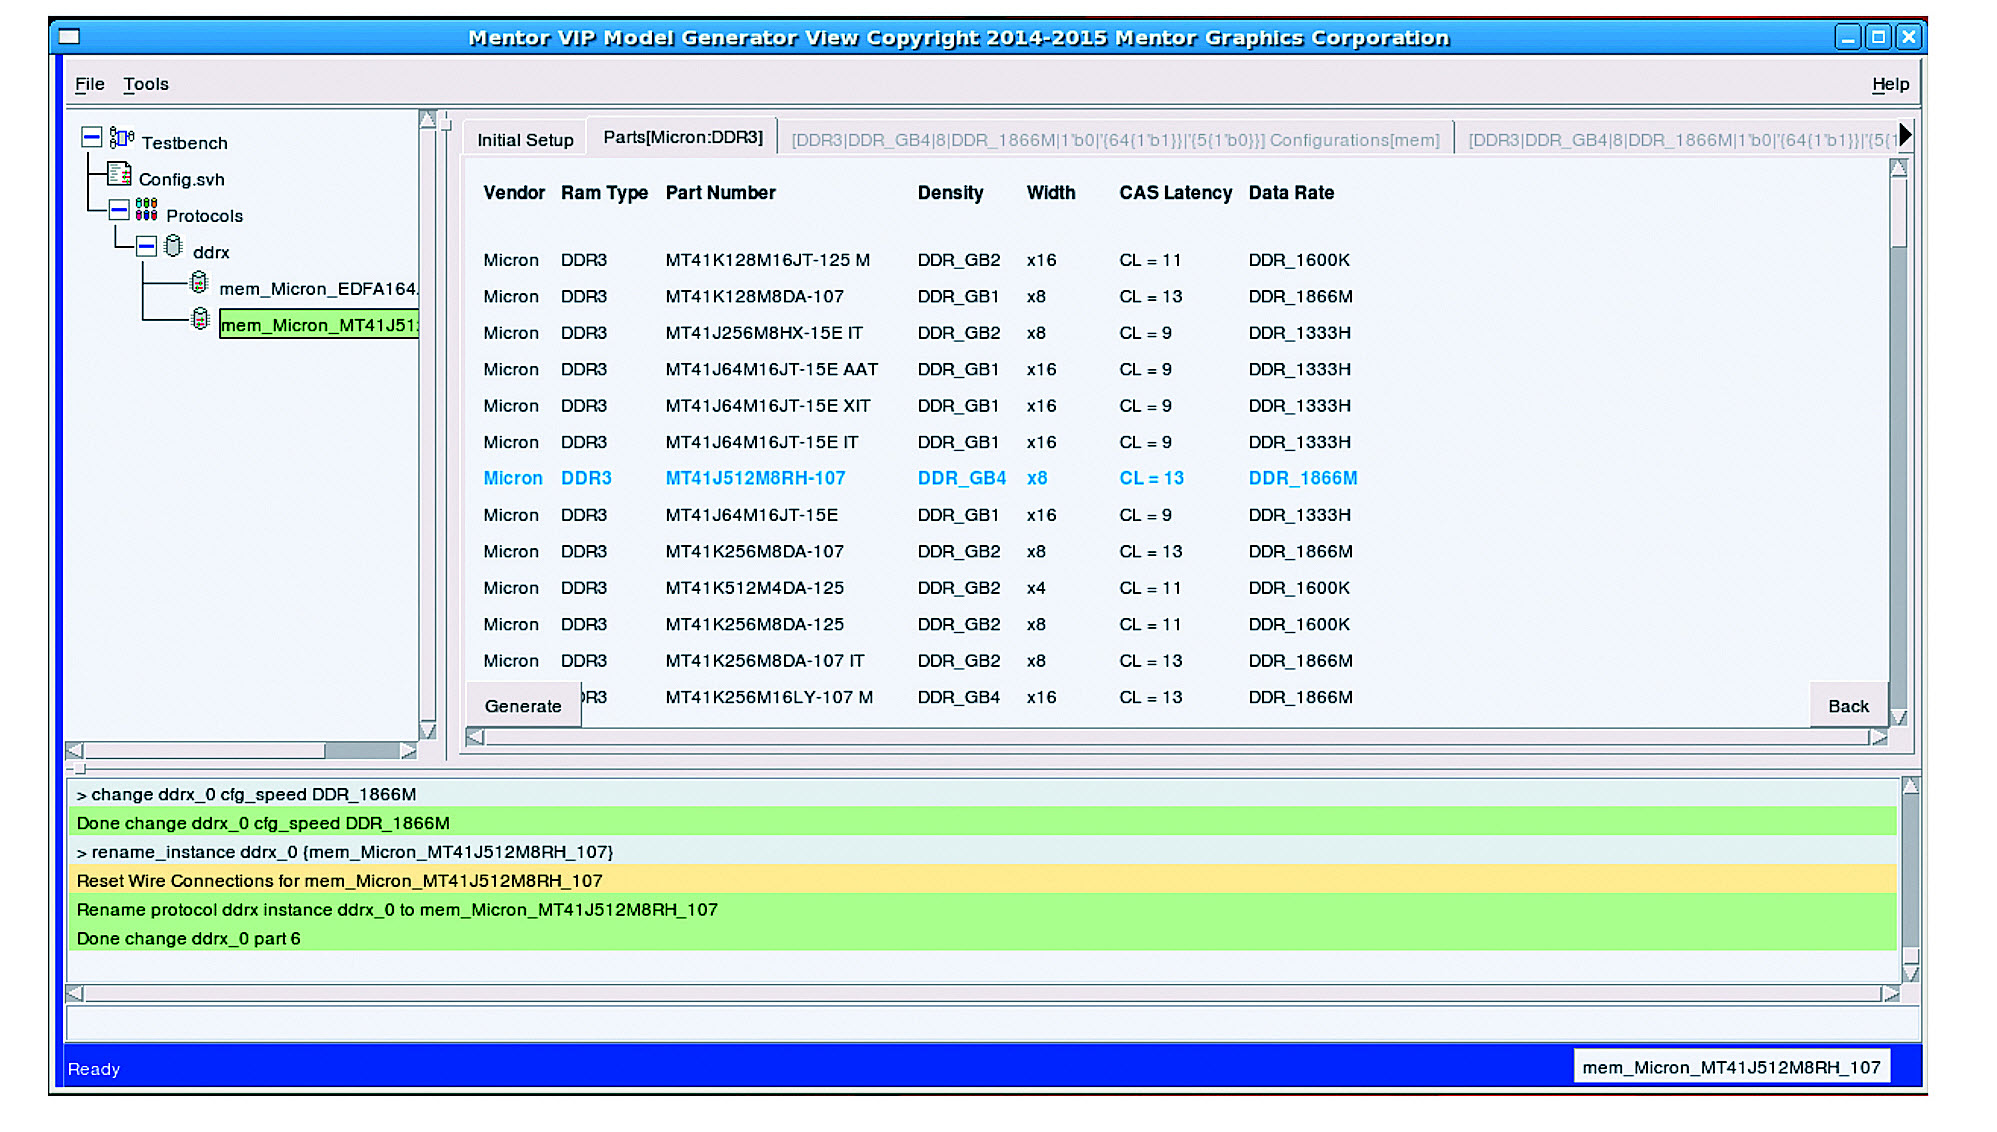 Figure 2. Screen shot of the Model Generator GUI